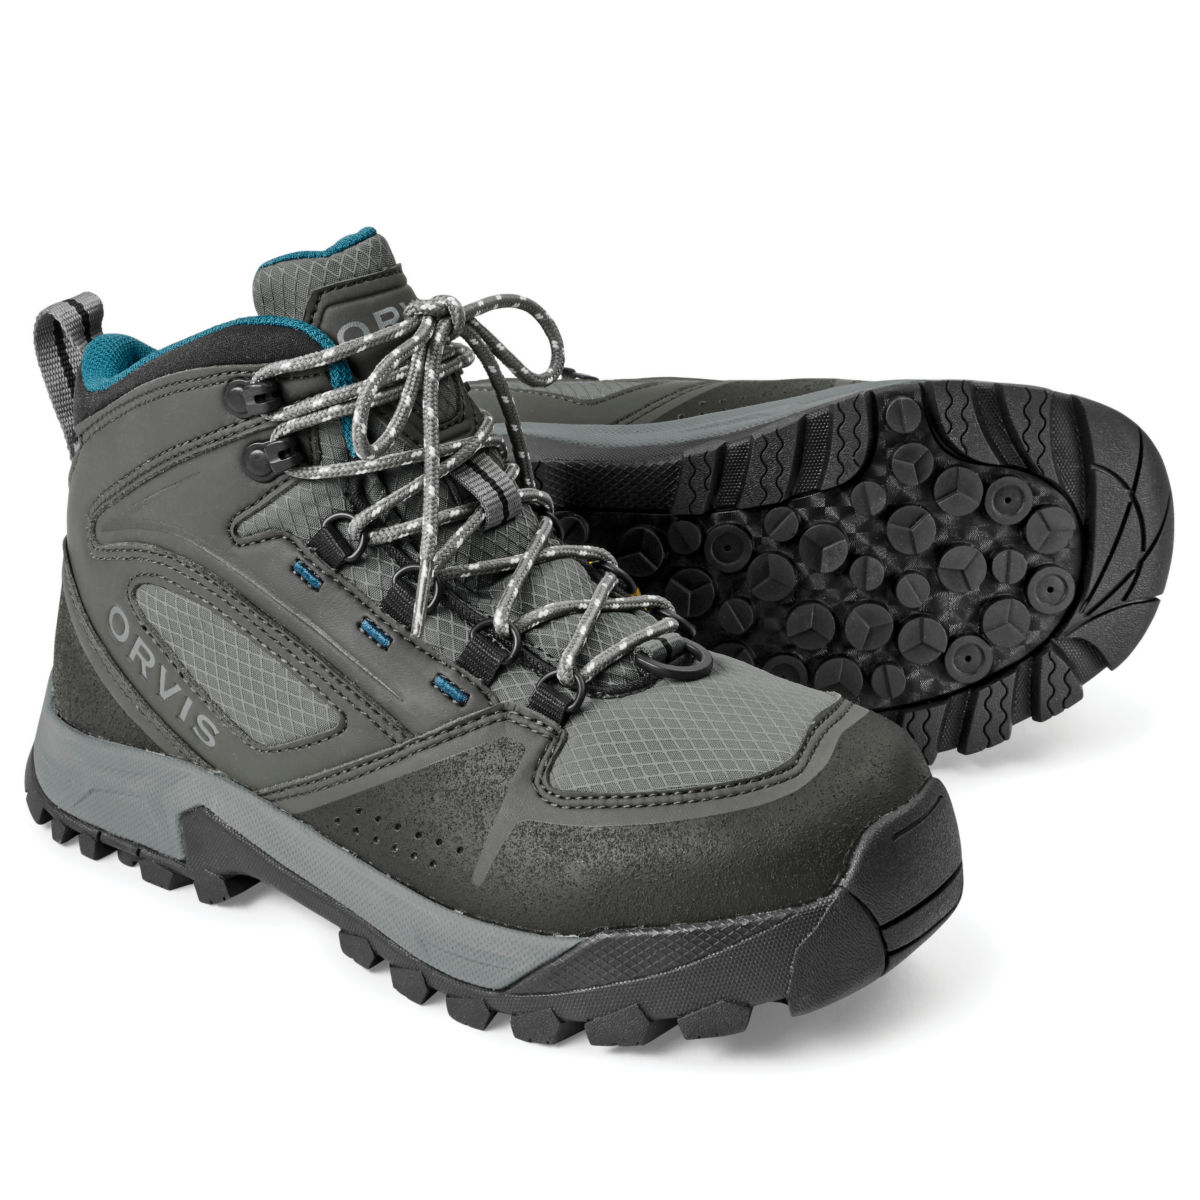 Women's Ultralight Wading Boot - COBBLESTONE/DRAGONFLYimage number 0